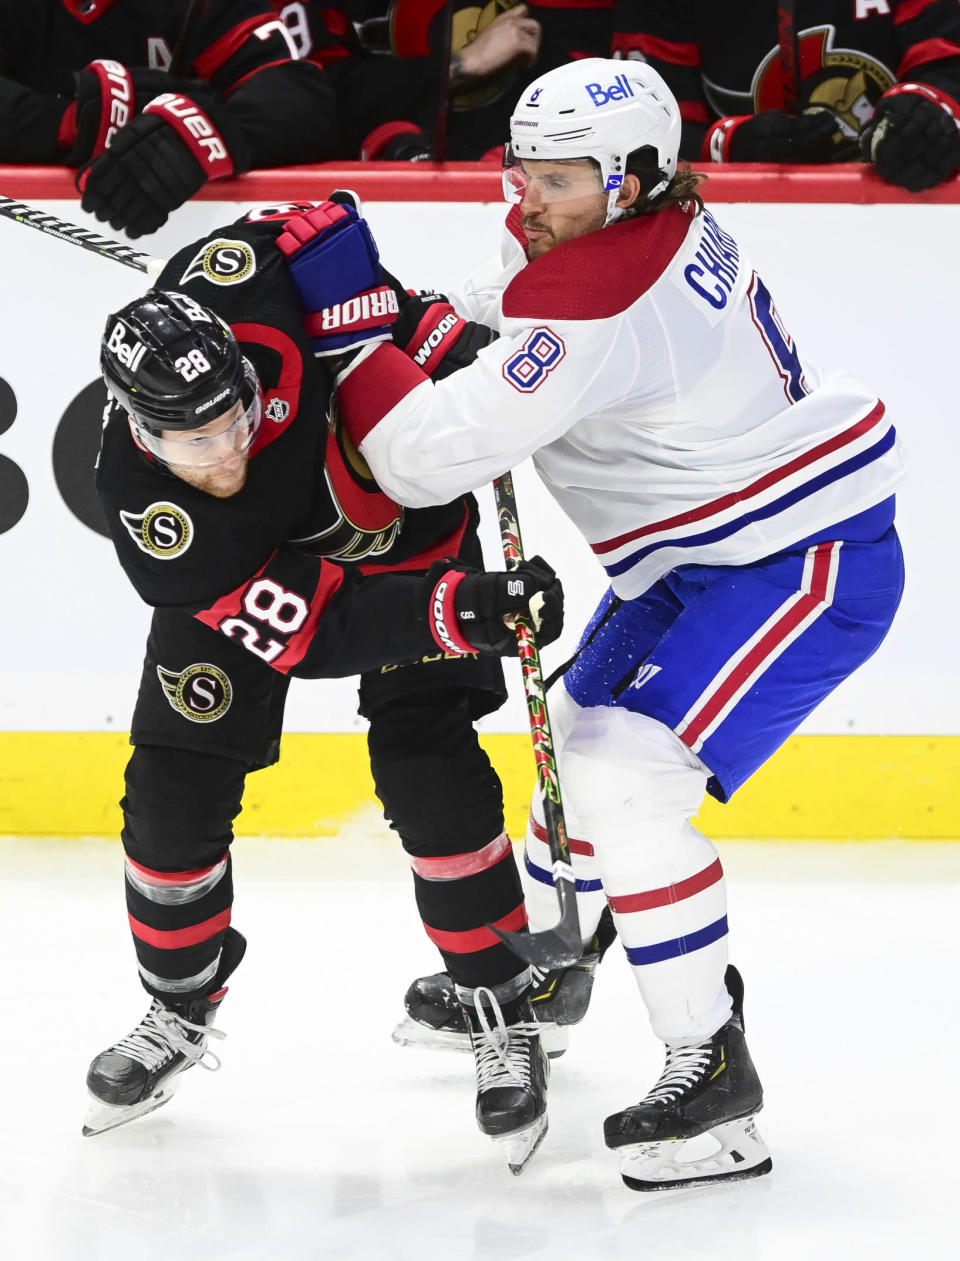 Ottawa Senators' Connor Brown, left, is hit by Montreal Canadiens' Ben Chiarot during the third period of an NHL hockey game, Wednesday, May 5, 2021 in Ottawa, Ontario. (Sean Kilpatrick/The Canadian Press via AP)